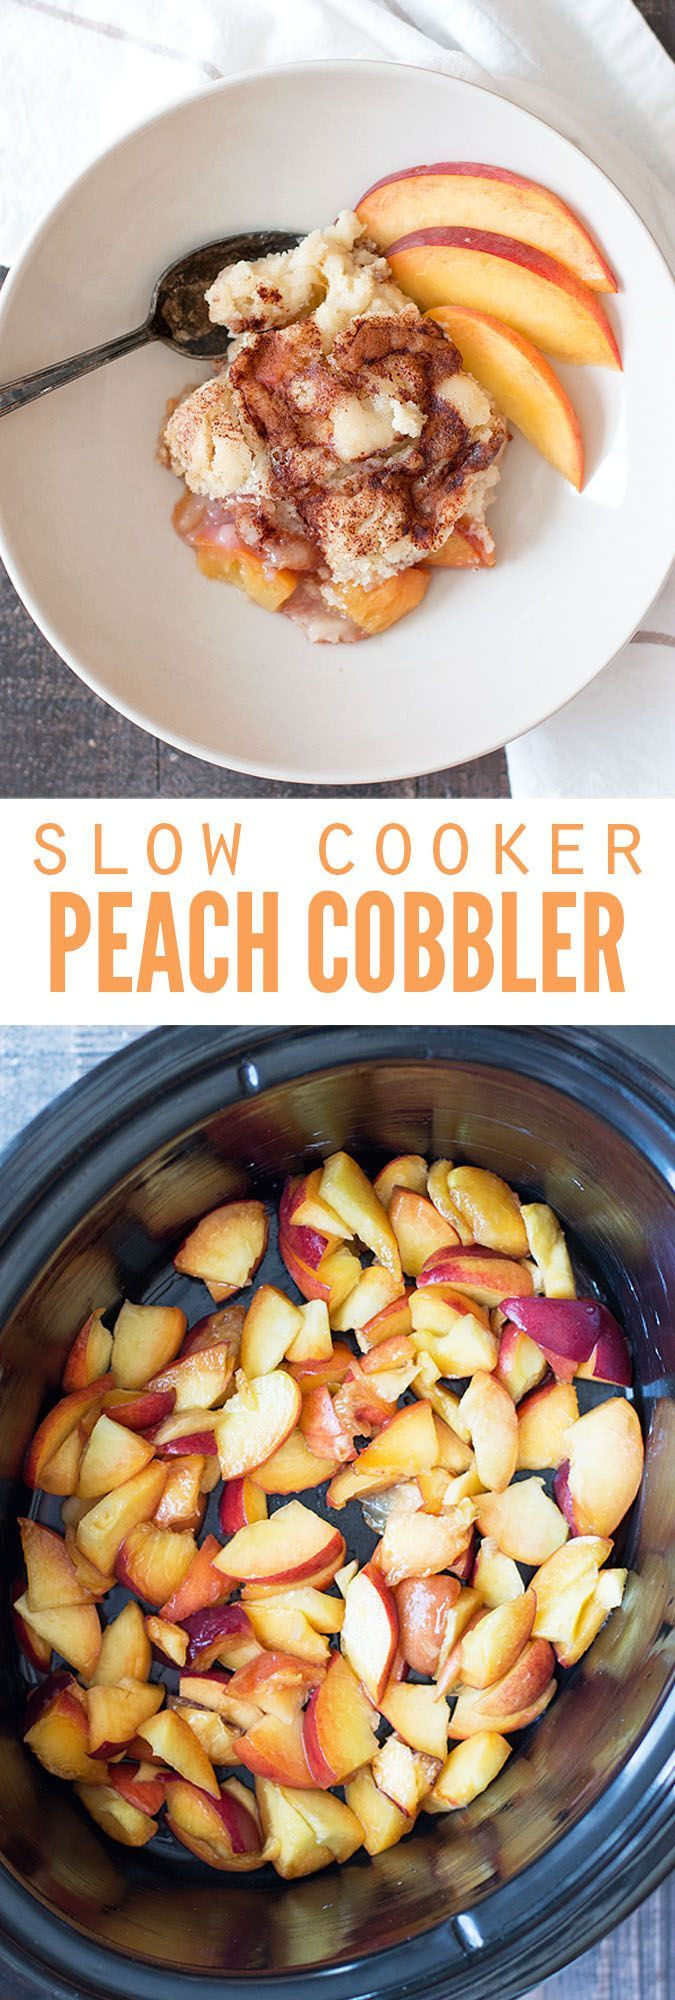 Slow Cooker Cake Recipes With Yellow Cake Mix  Slow Cooker Peach Cobbler Recipe